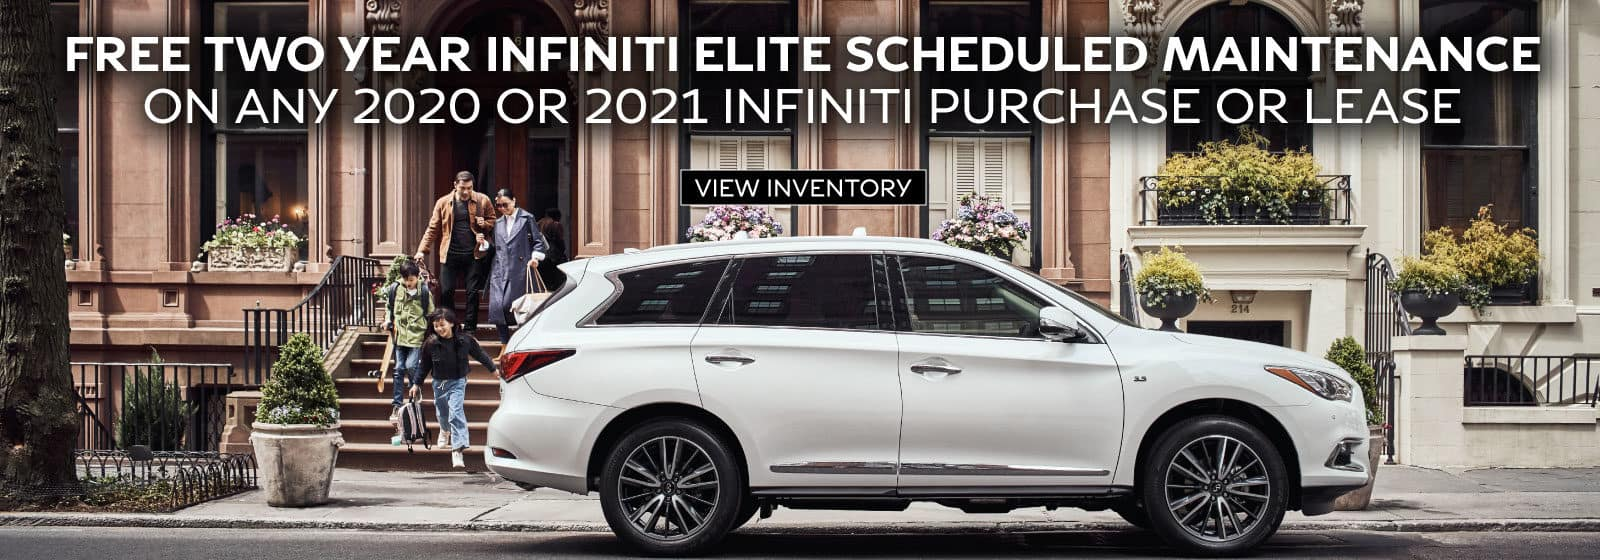 2 years of complimentary INFINITI Elite Maintenance when you purchase or lease any 2020 or 2021 vehicle.